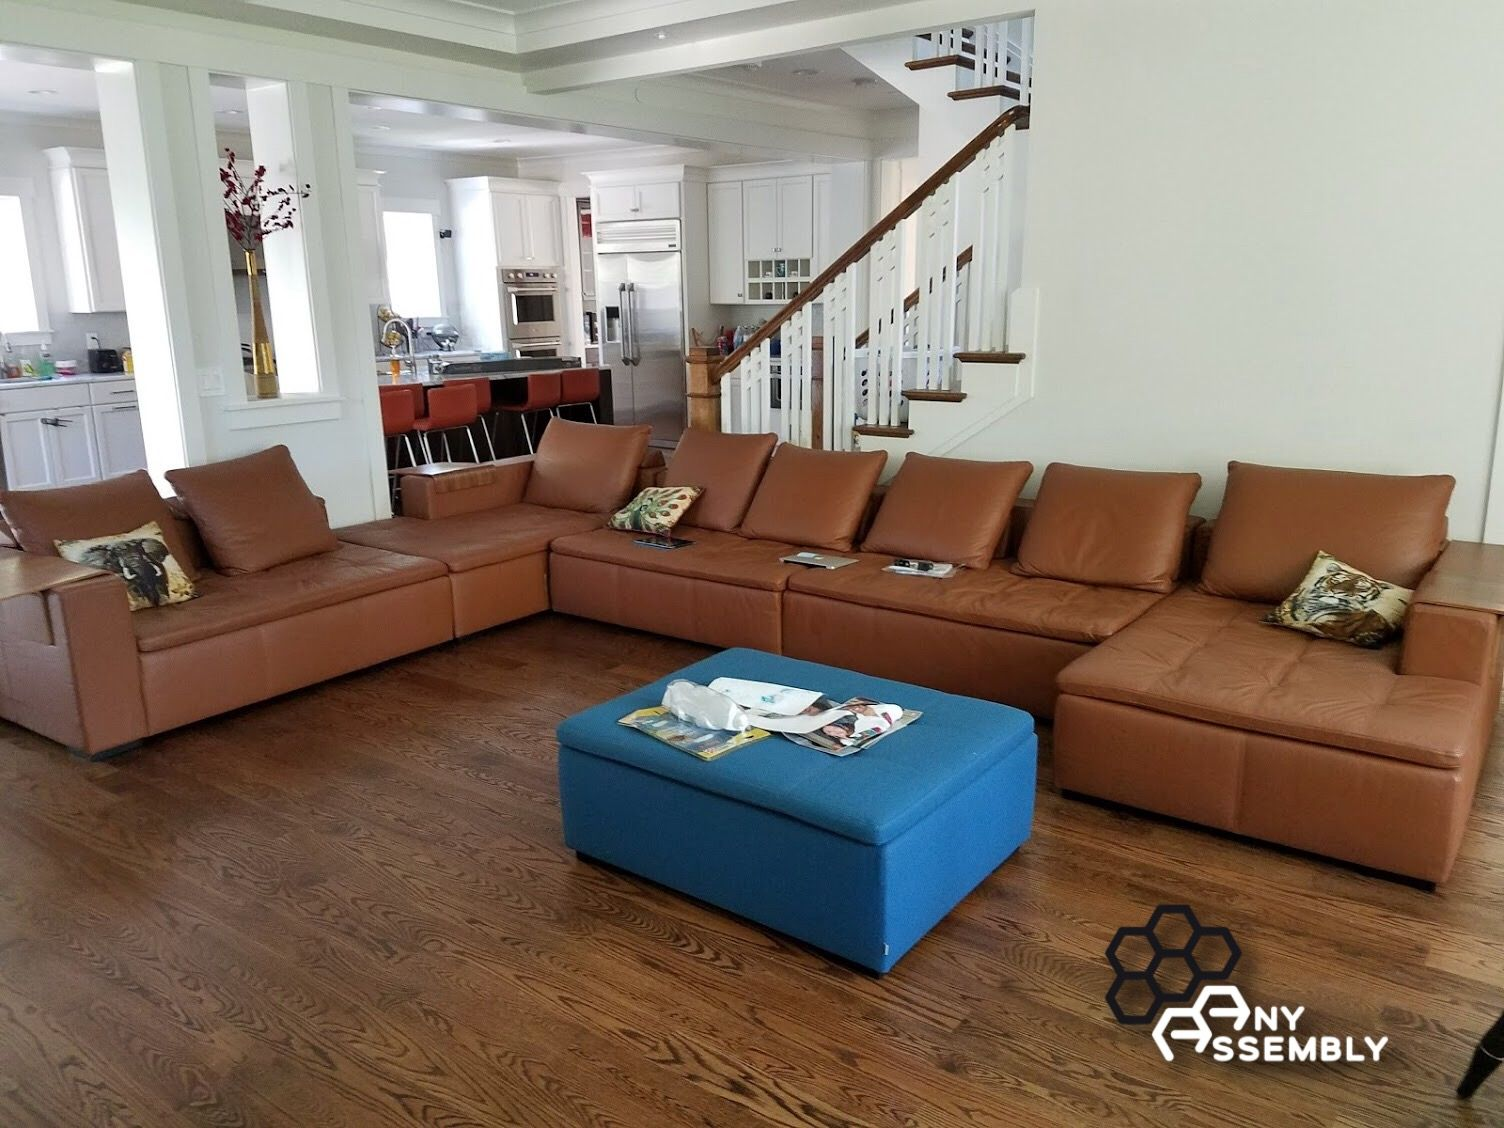 It S High Time To Have A Rest On A Comfortable Sofa Click The